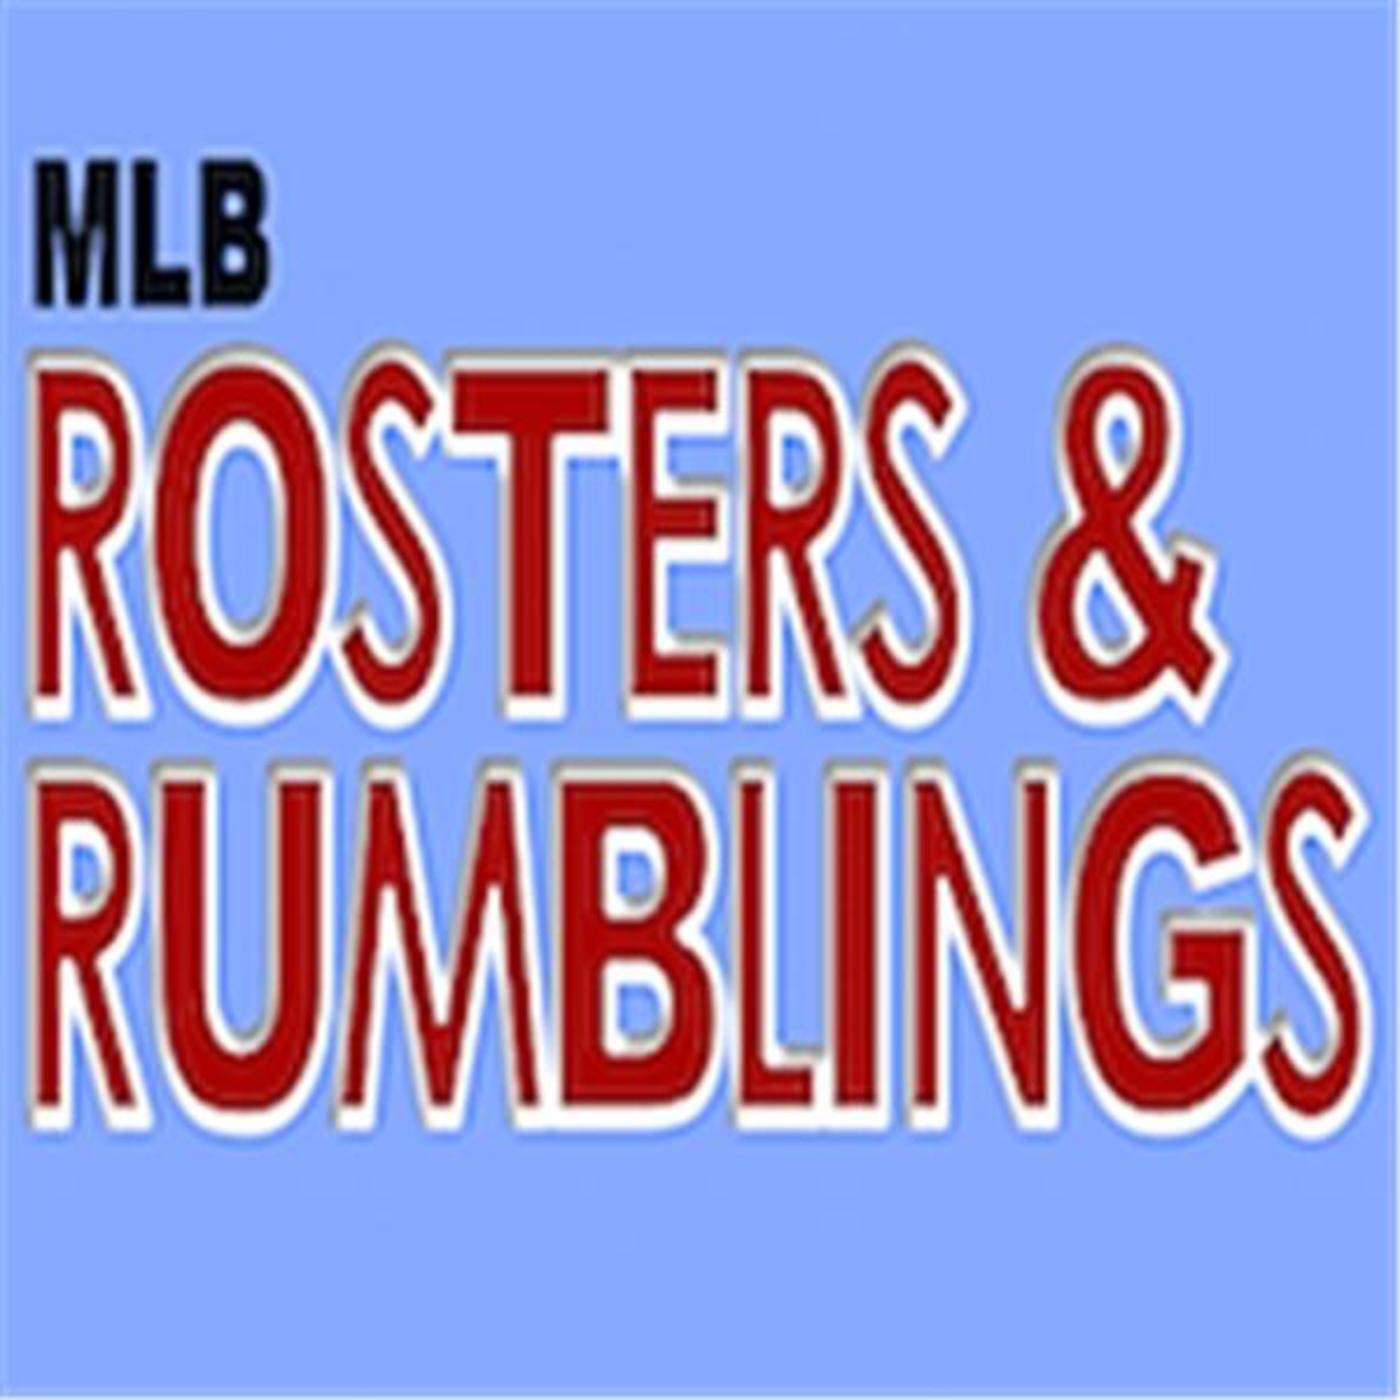 The Rosters and Rumblings Podcast